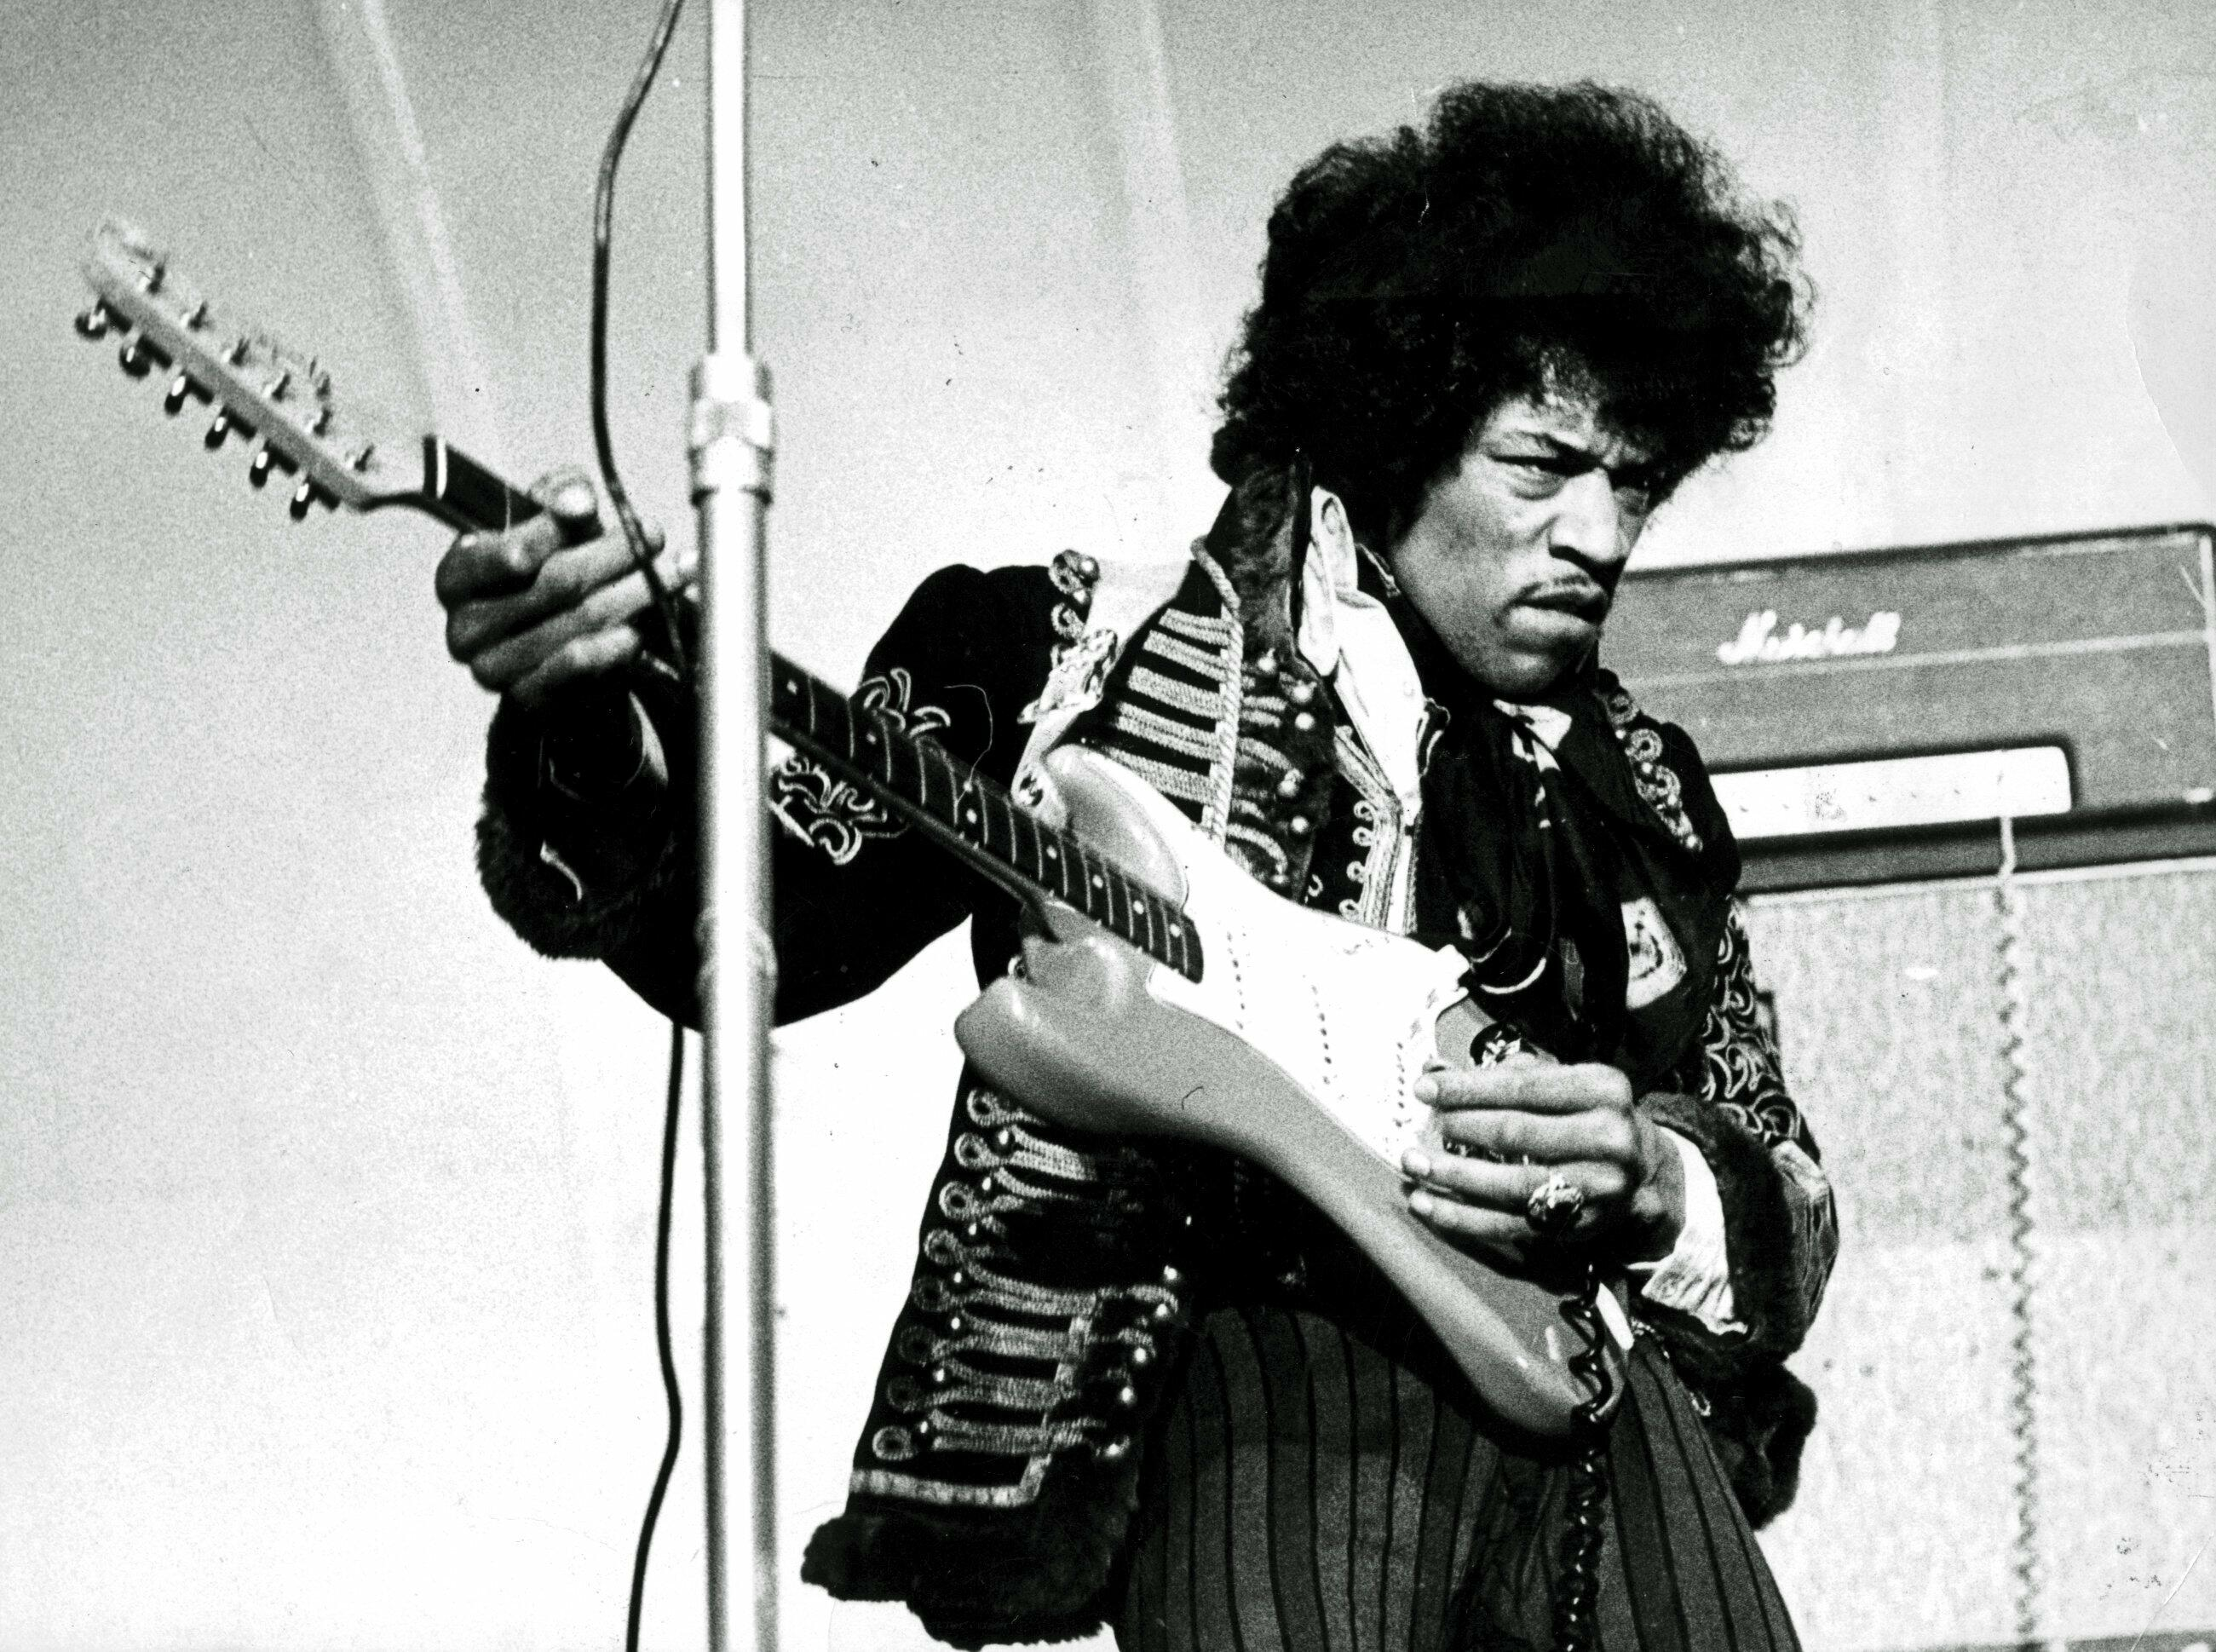 Jimi Hendrix 1967 uncropped